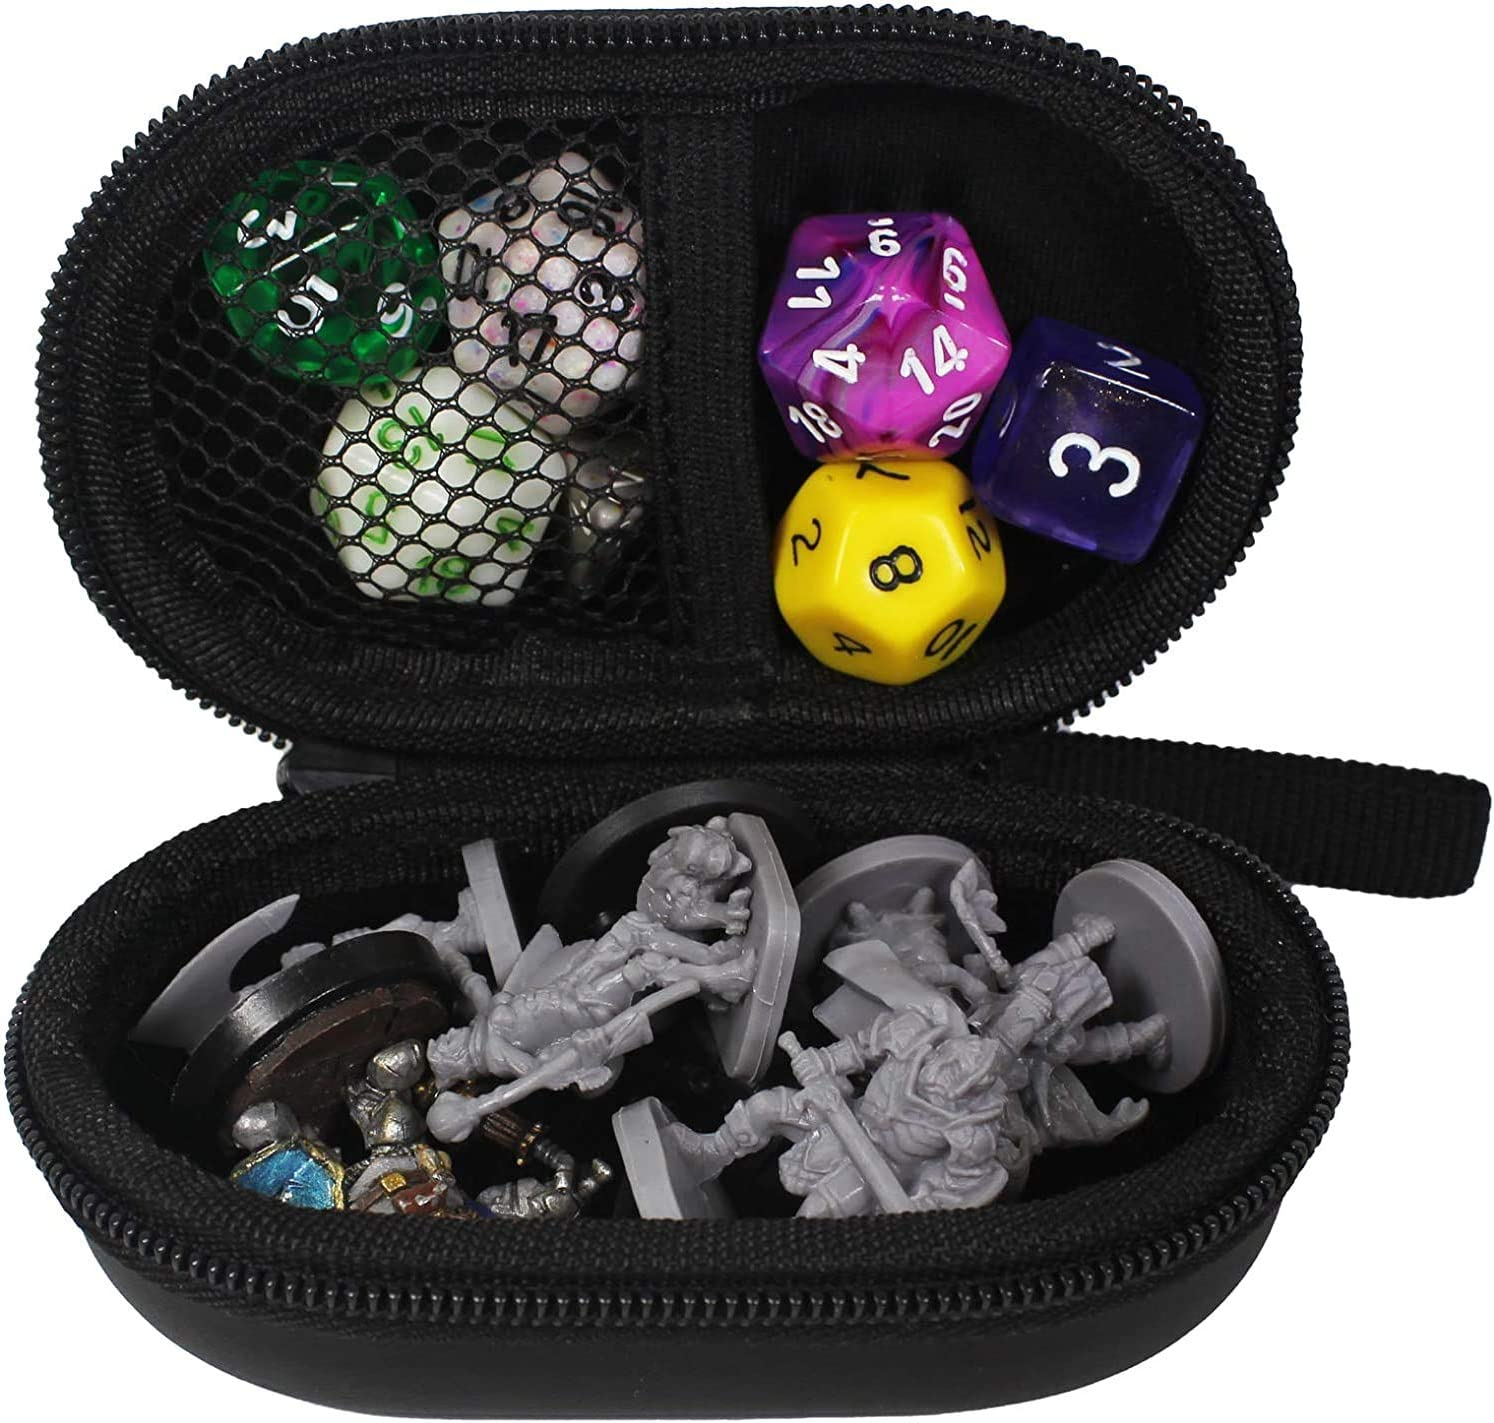 Case ONLY, Dices NOT Included Card Games TUDIA EVA Small Empty Hard Dice Case for Board Games RPG Table Games Dungeons /& Dragons Small